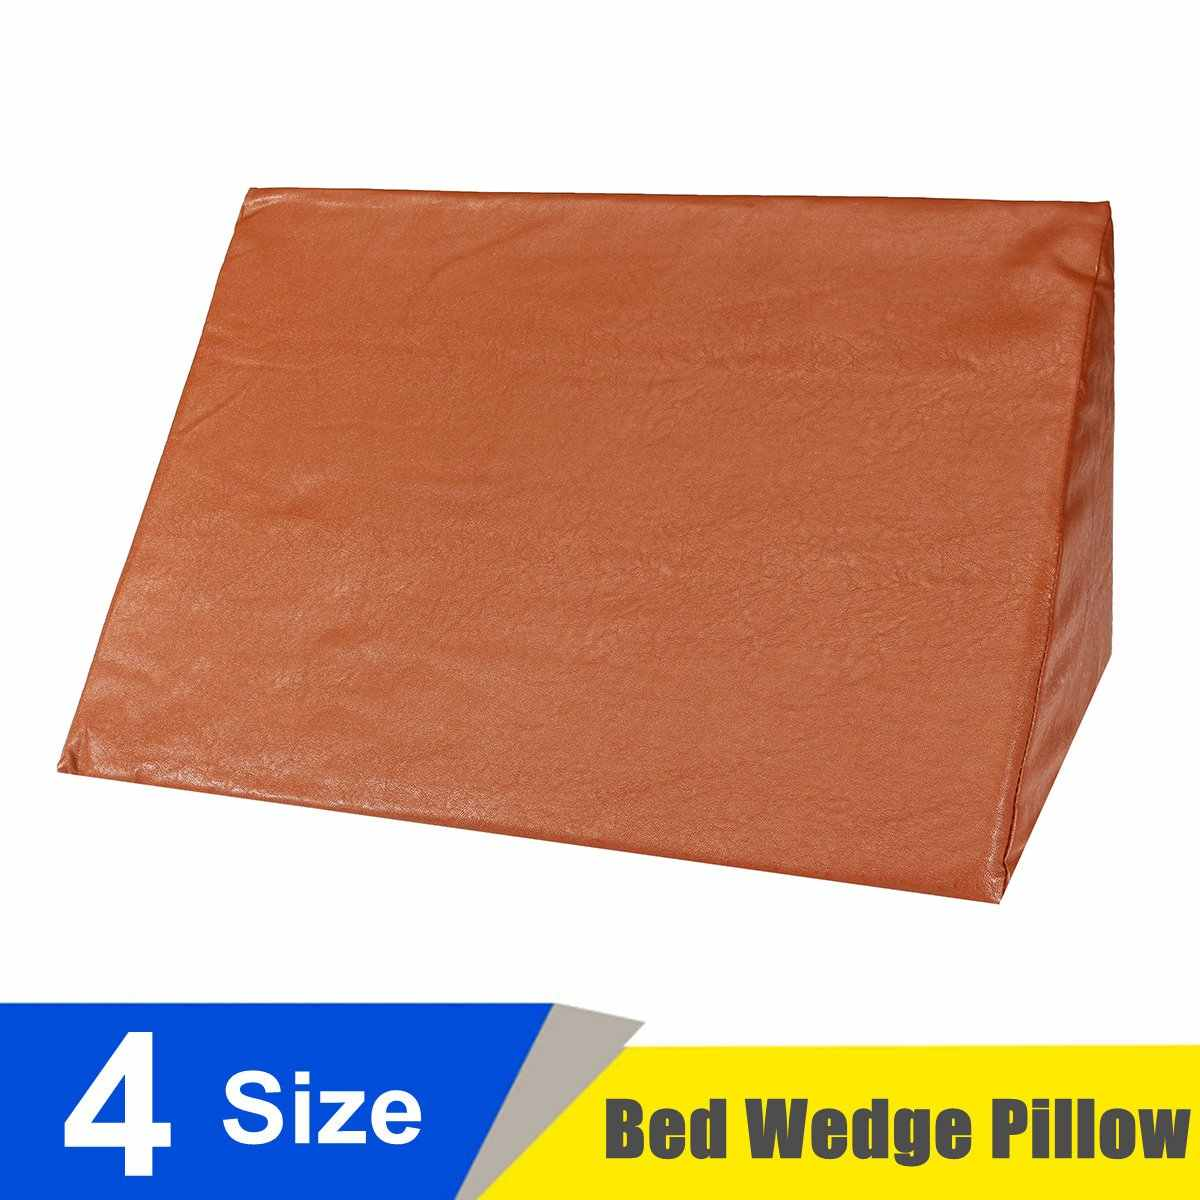 Orthopedic Acid Reflux Bed Wedge Pillow Leather Sponge Back Leg Elevation Cushion Pad Triangle Pillow Cover Brown Bedding